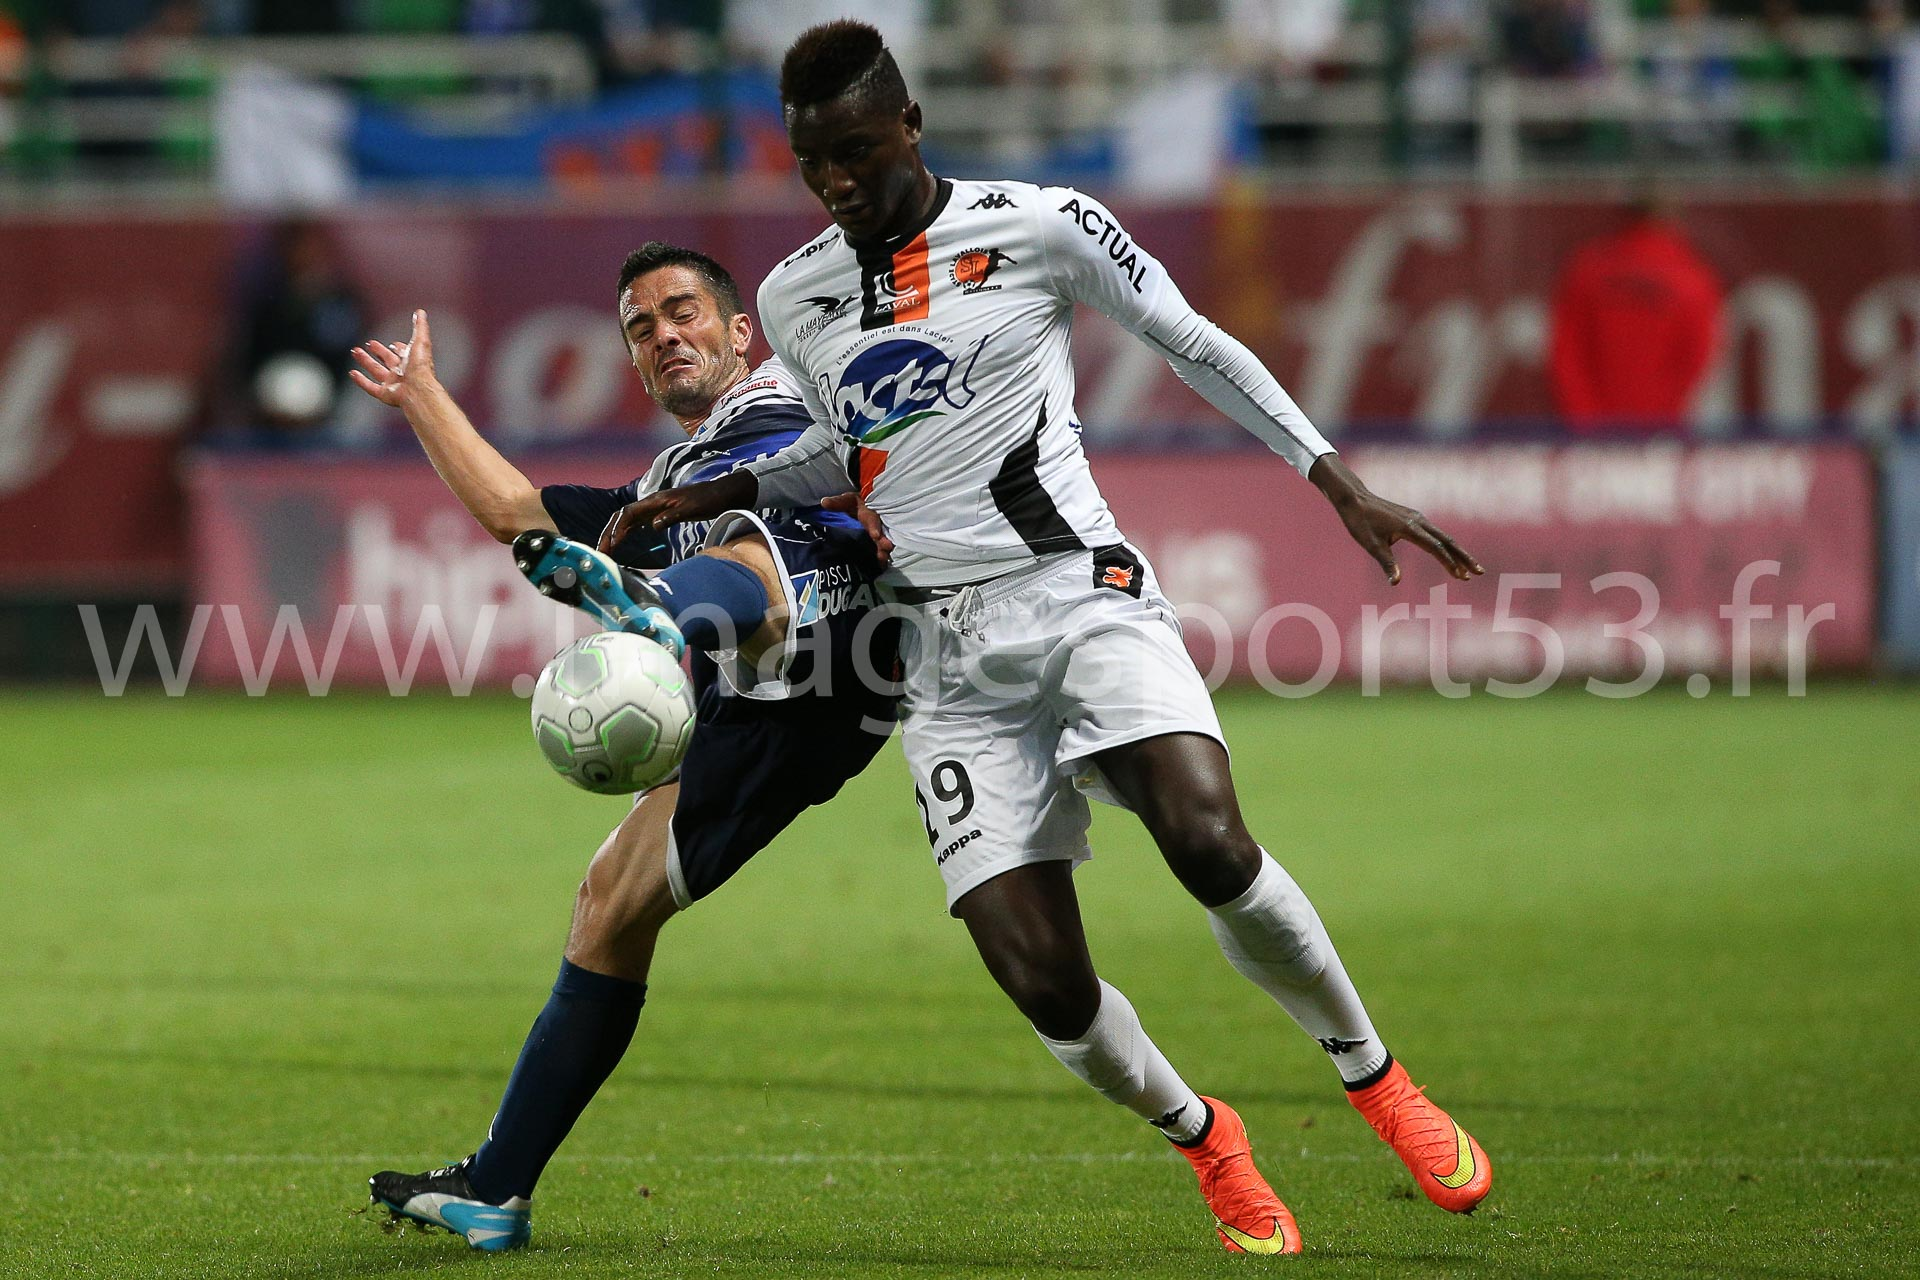 Guillaume LACOURT (ES Troyes AC), Sehrou GUIRASSY (Stade Lavallo